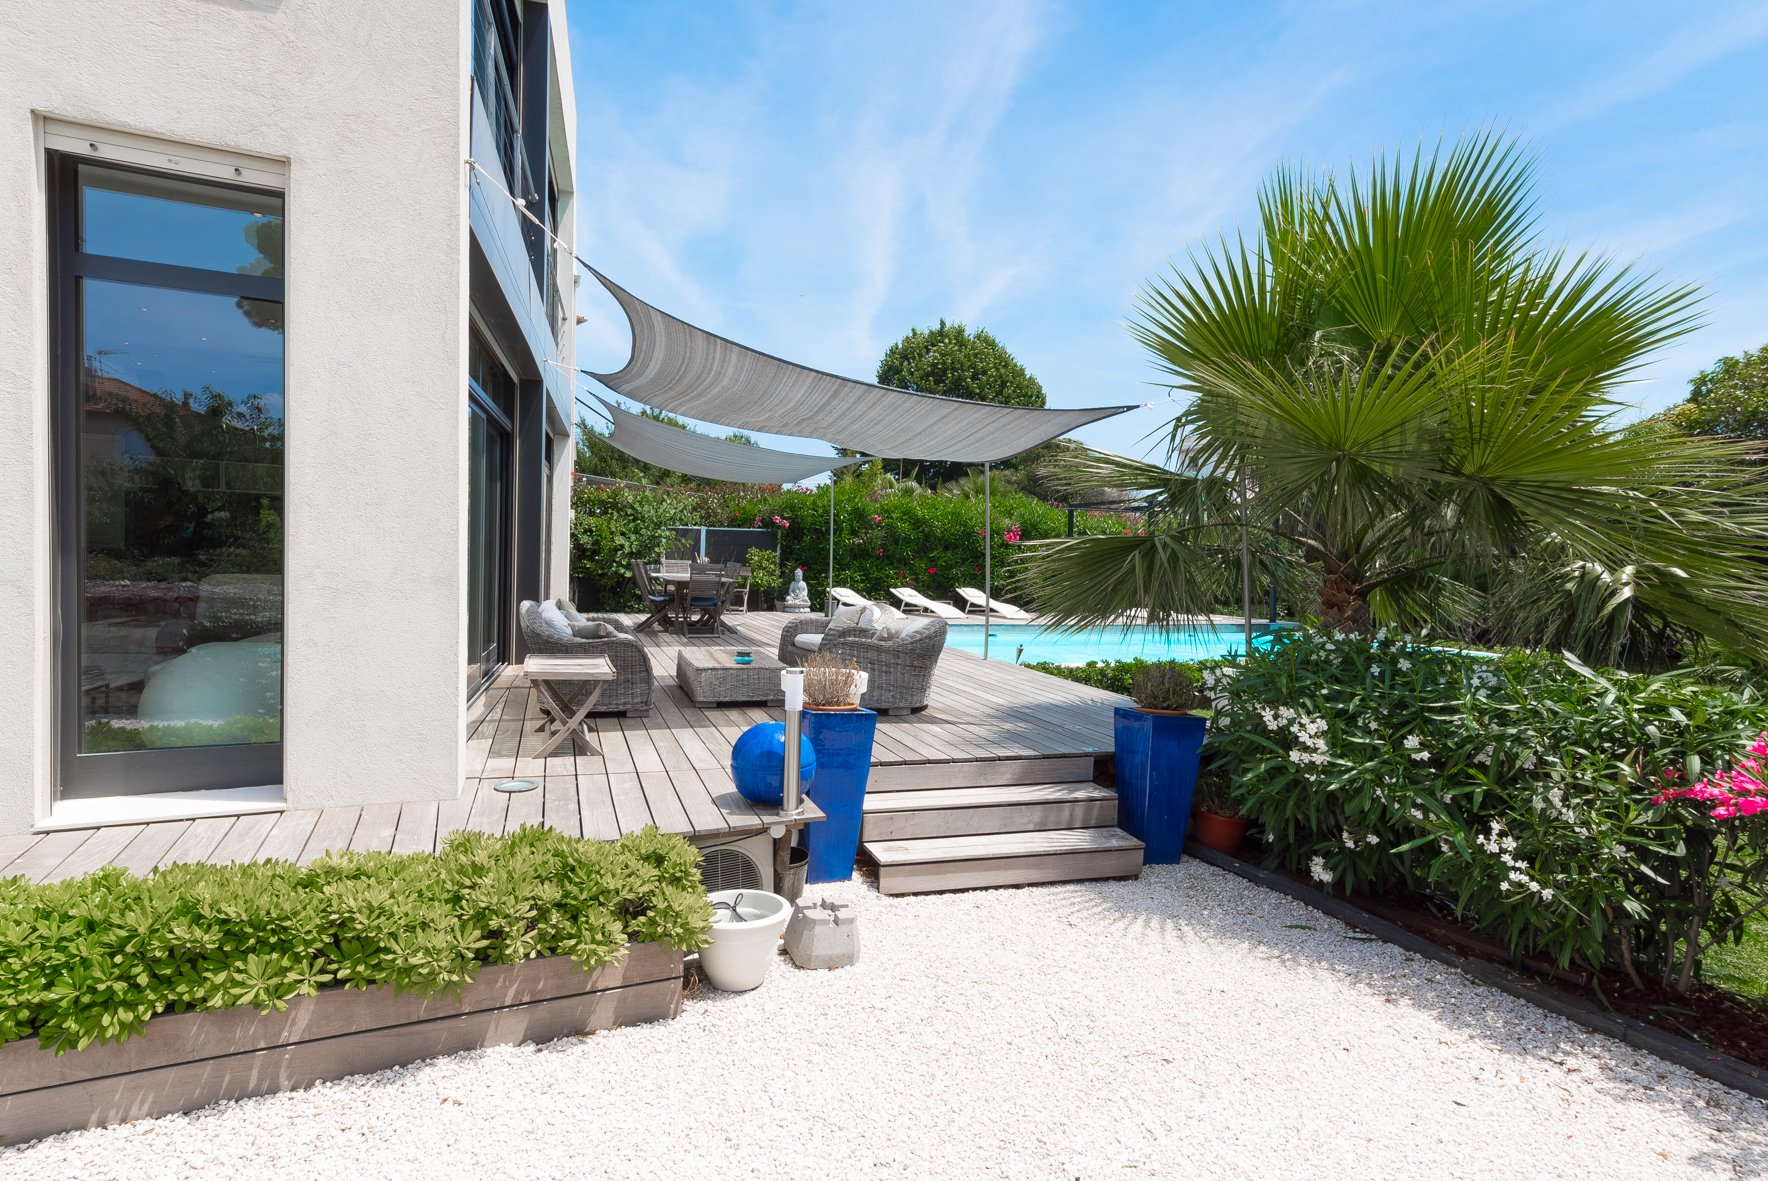 Congress rental house close center of Cannes swimming pool garden